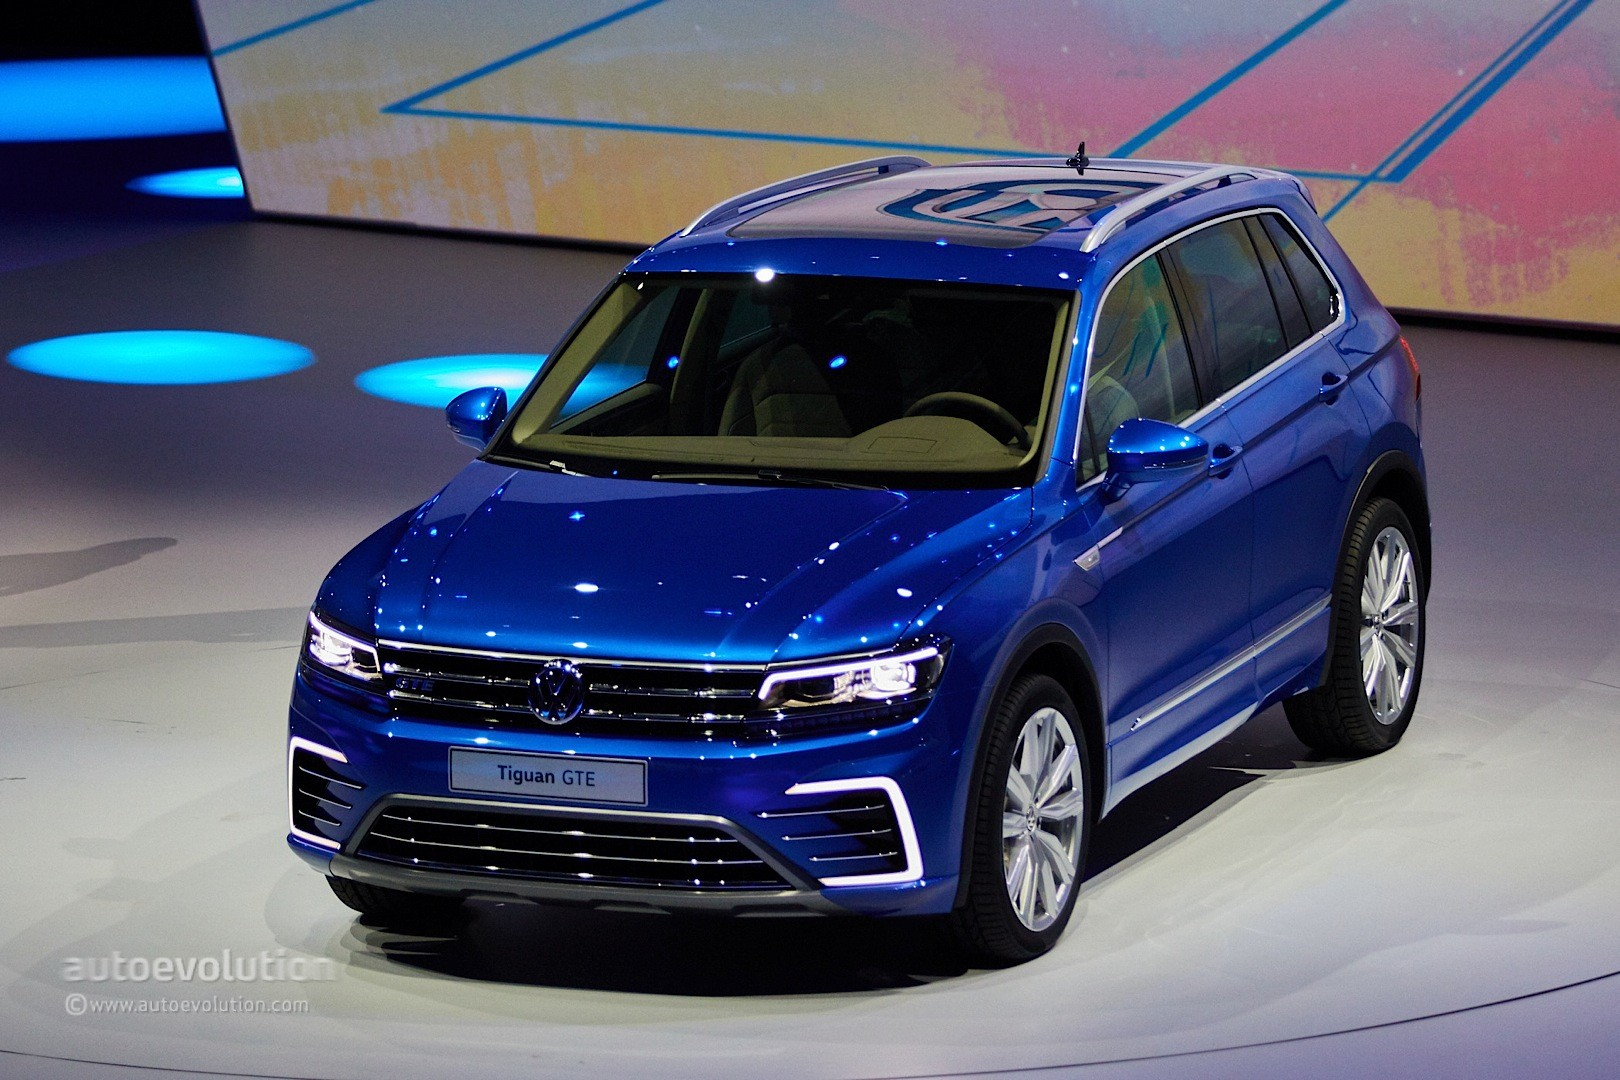 Volkswagen Tiguan GTE Concept Revealed with 218 PS and 50 KM Electric Range - autoevolution